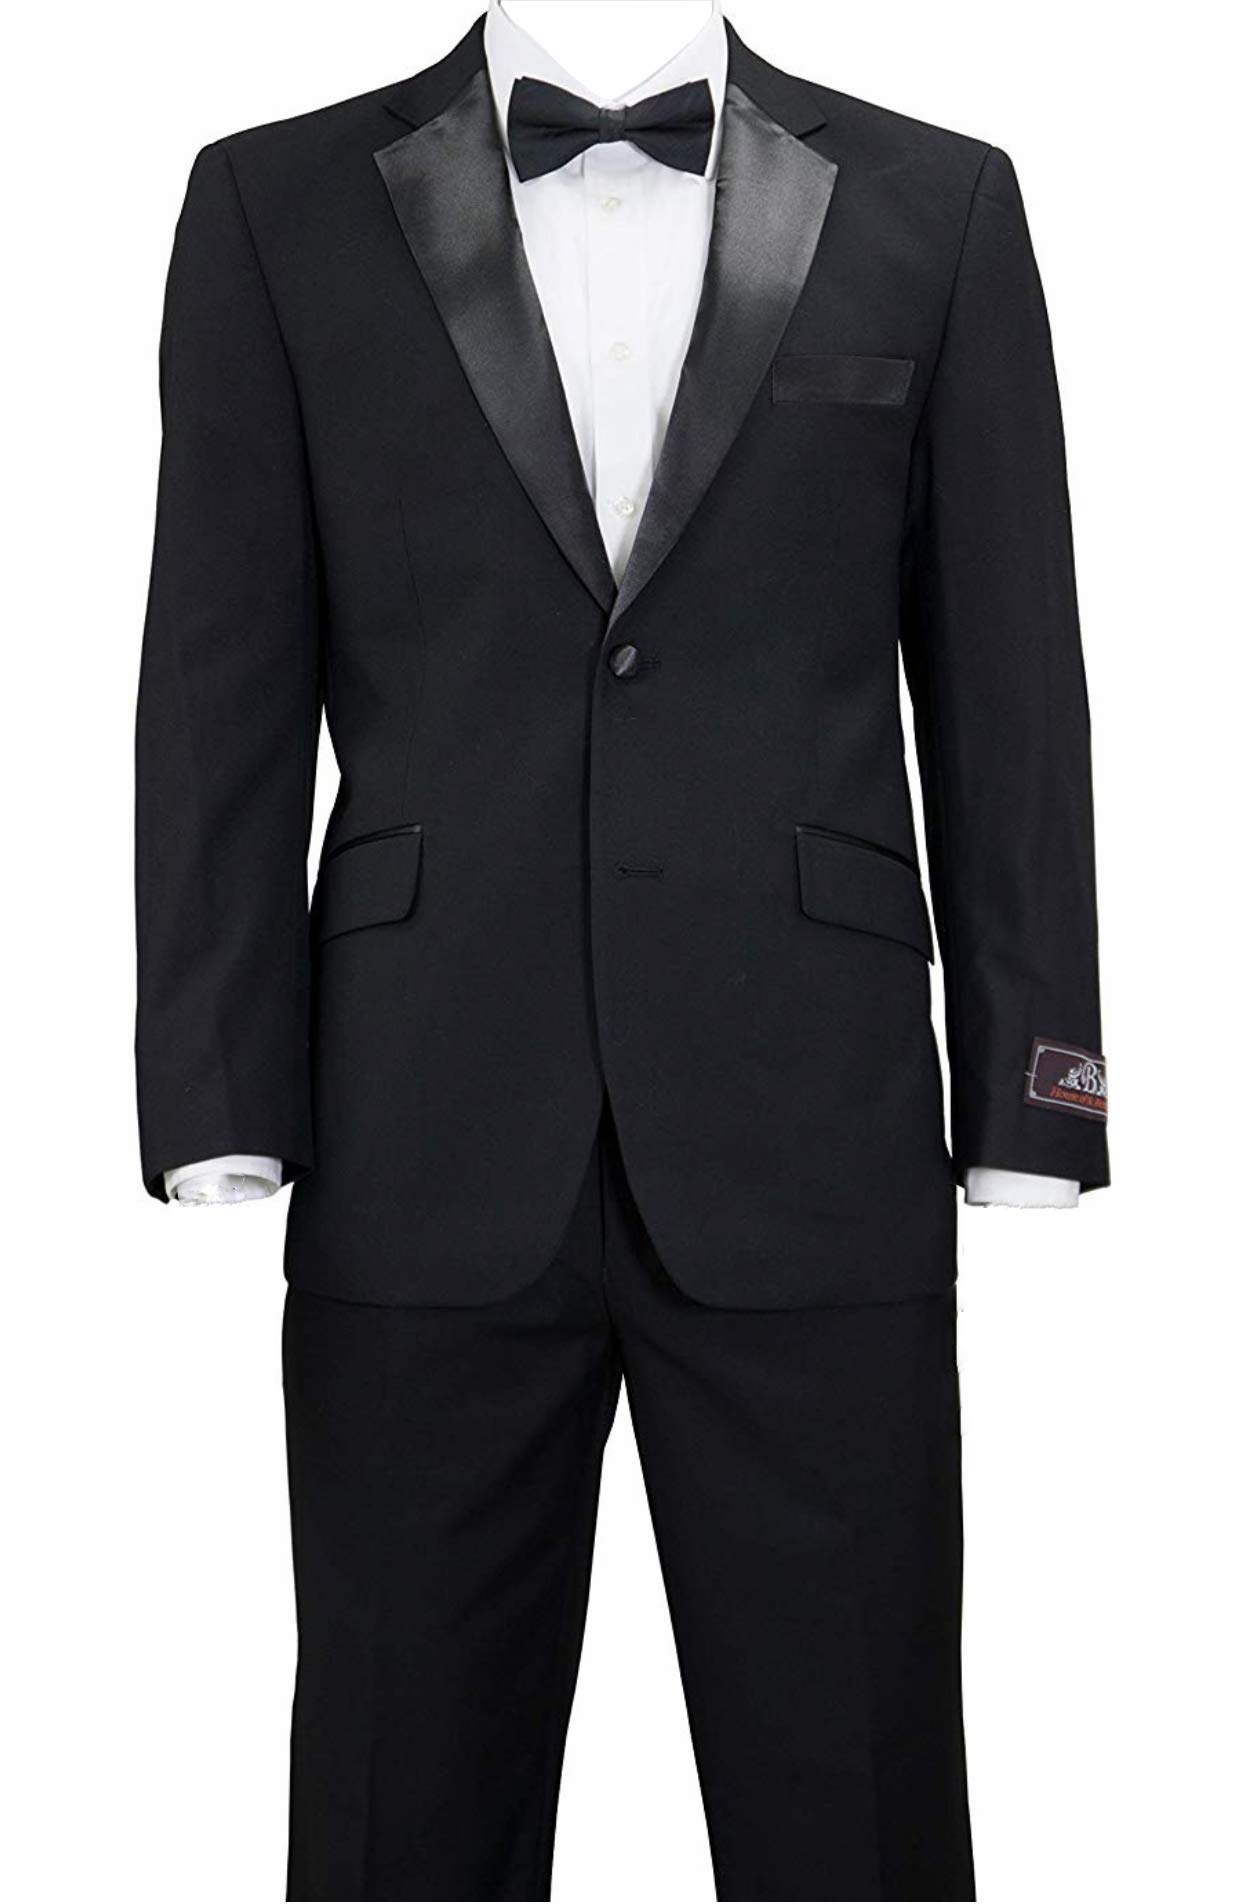 69c0d8babf7 Best Rated in Men's Tuxedos & Helpful Customer Reviews - Amazon.com